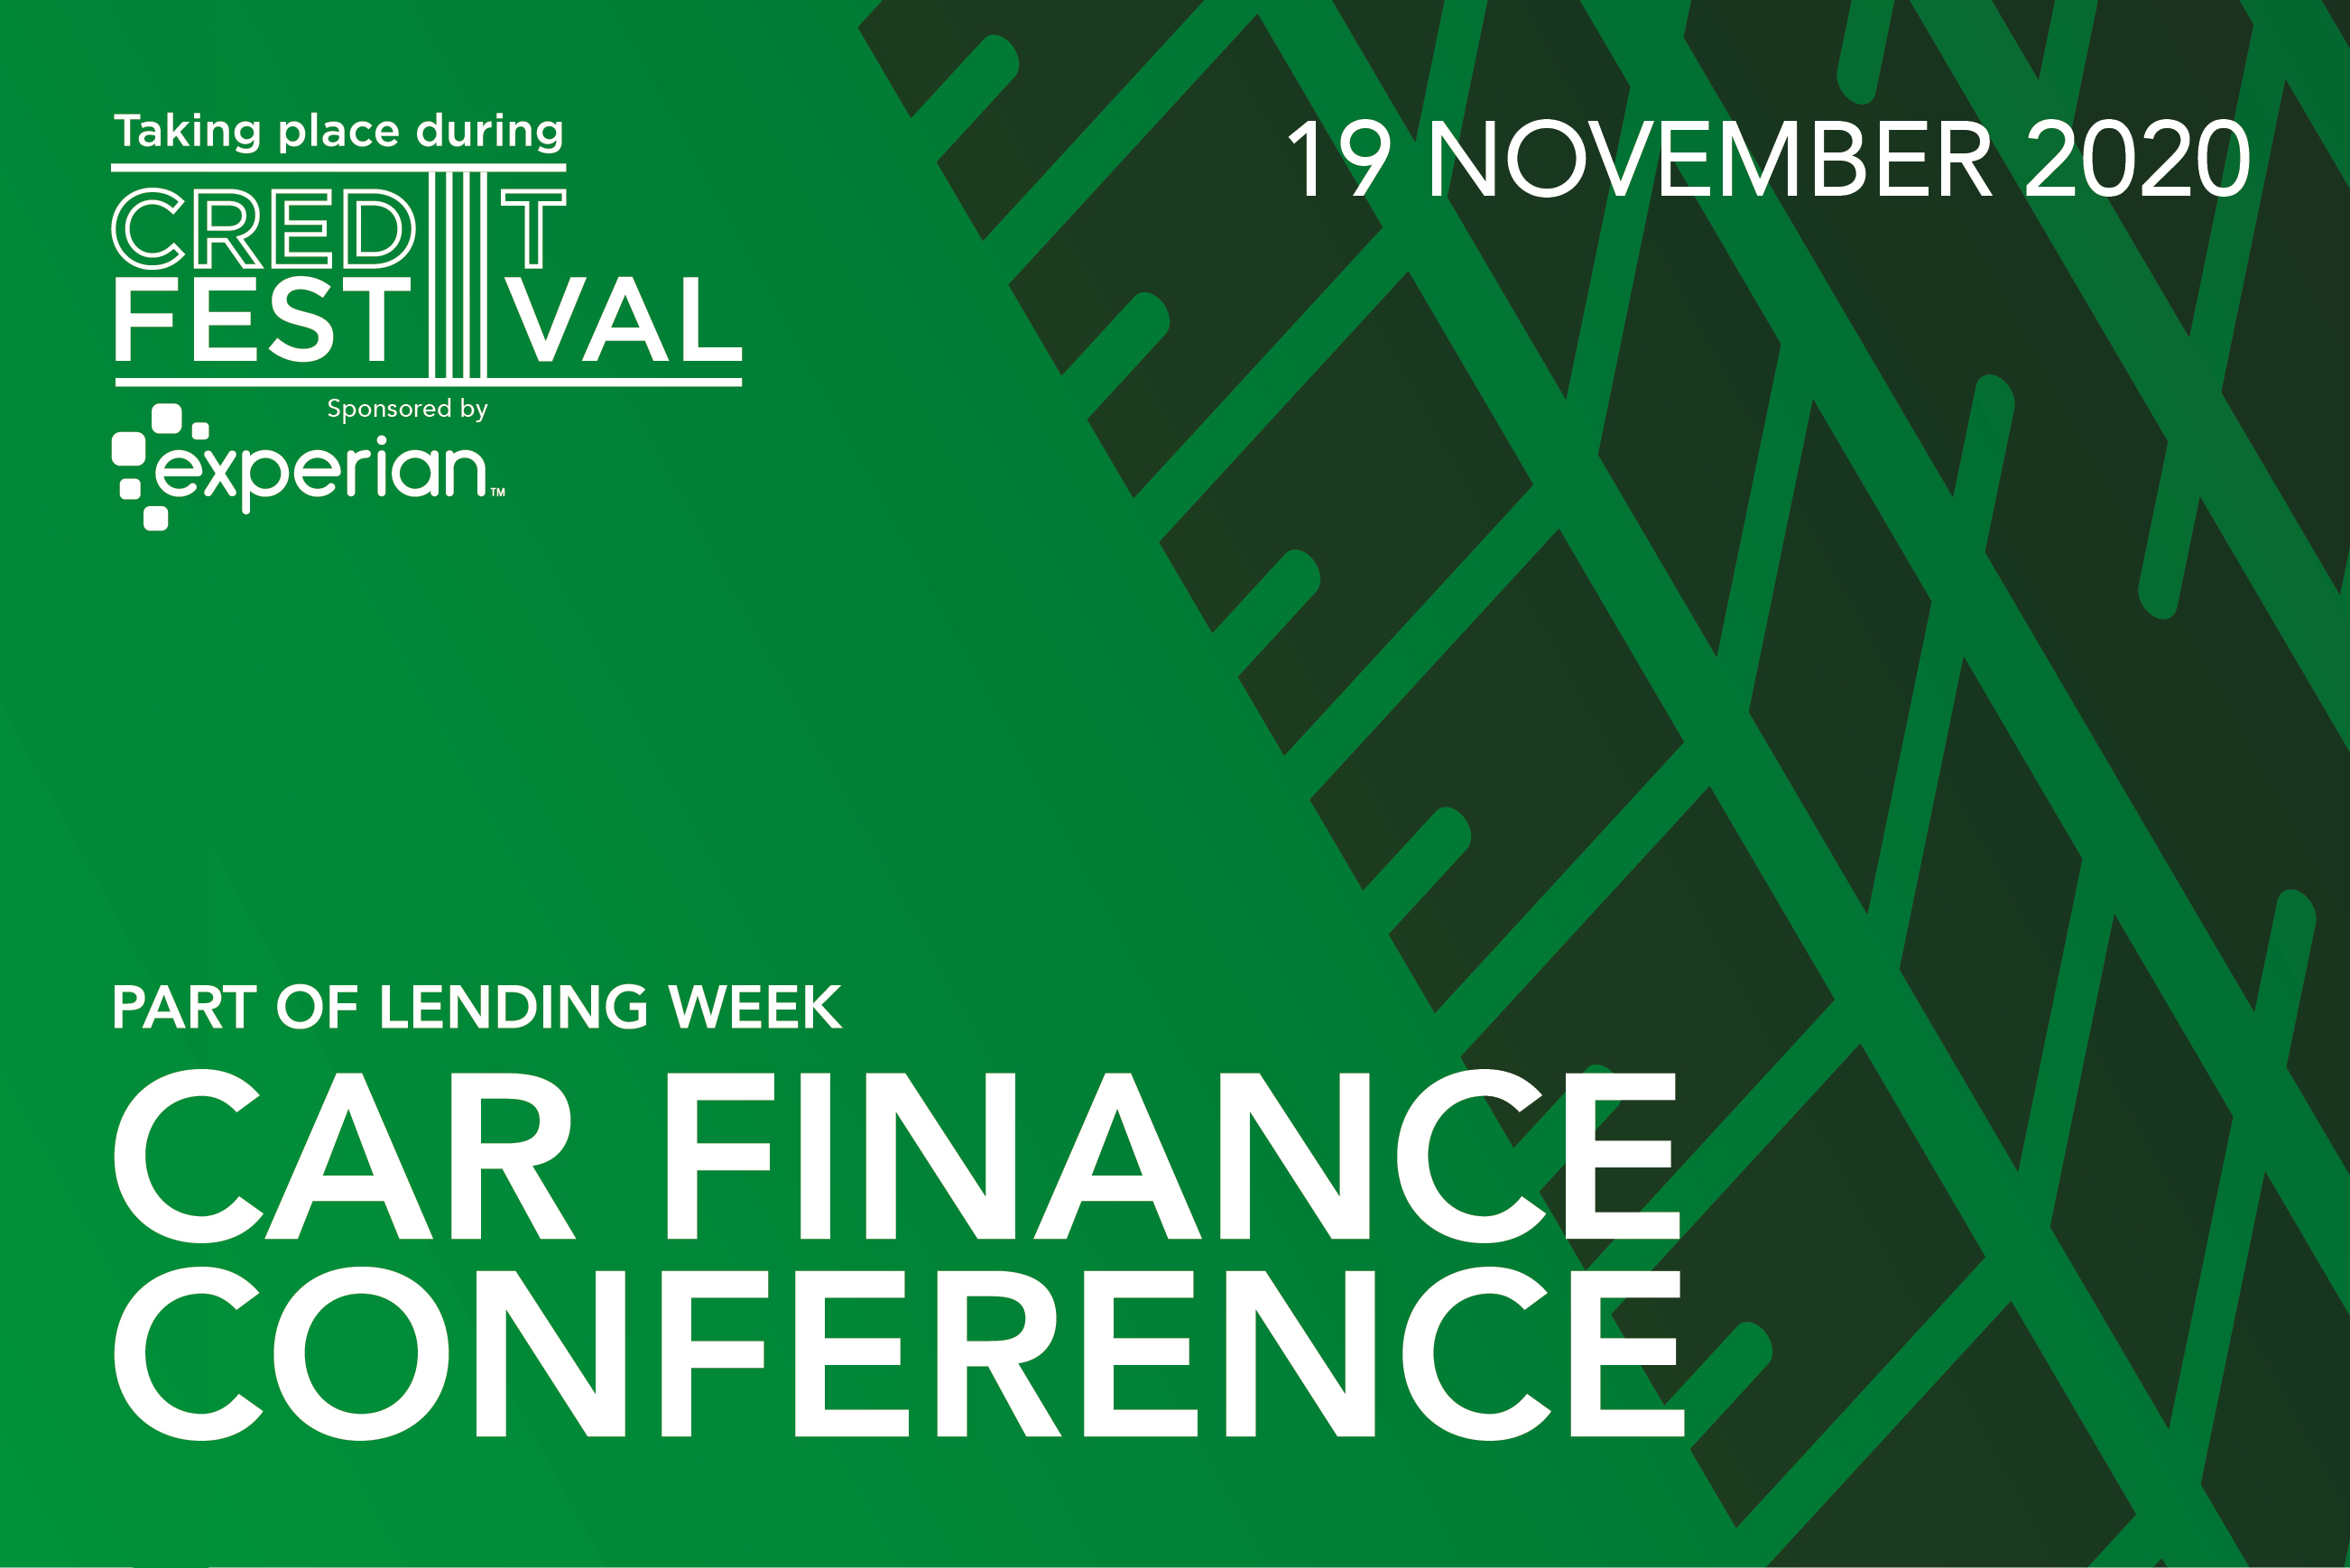 Car Finance Conference